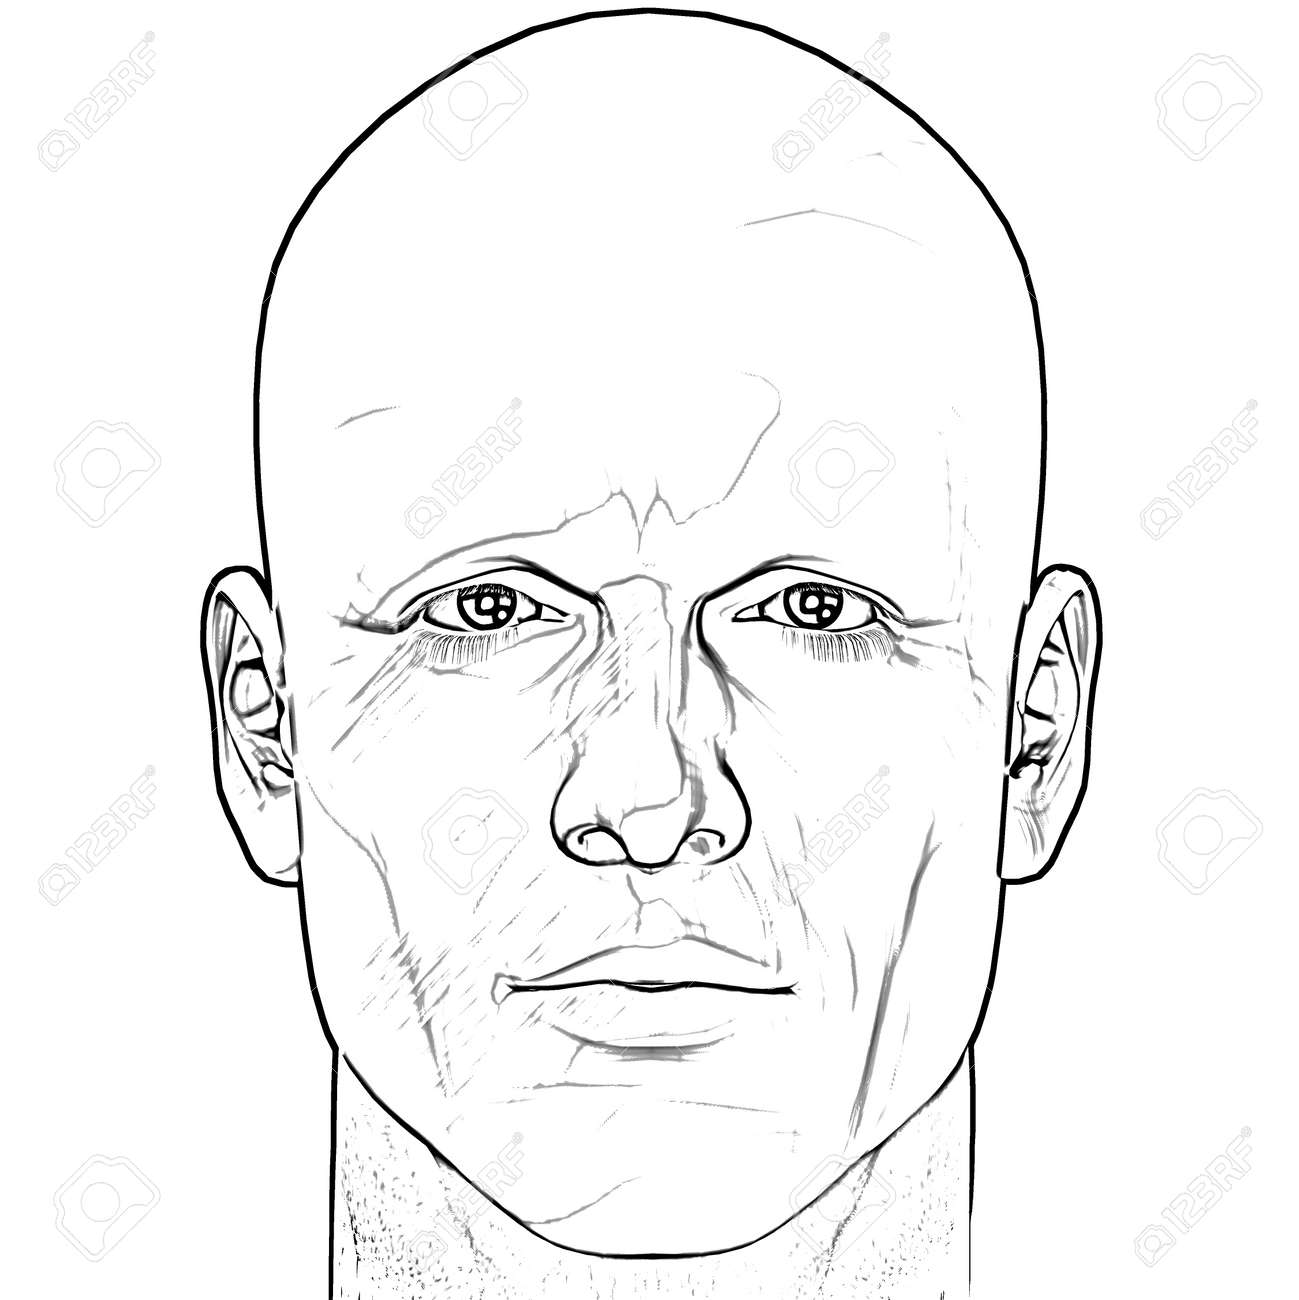 Black and white male figure sketch. Computer rendered illustration. - 3974241